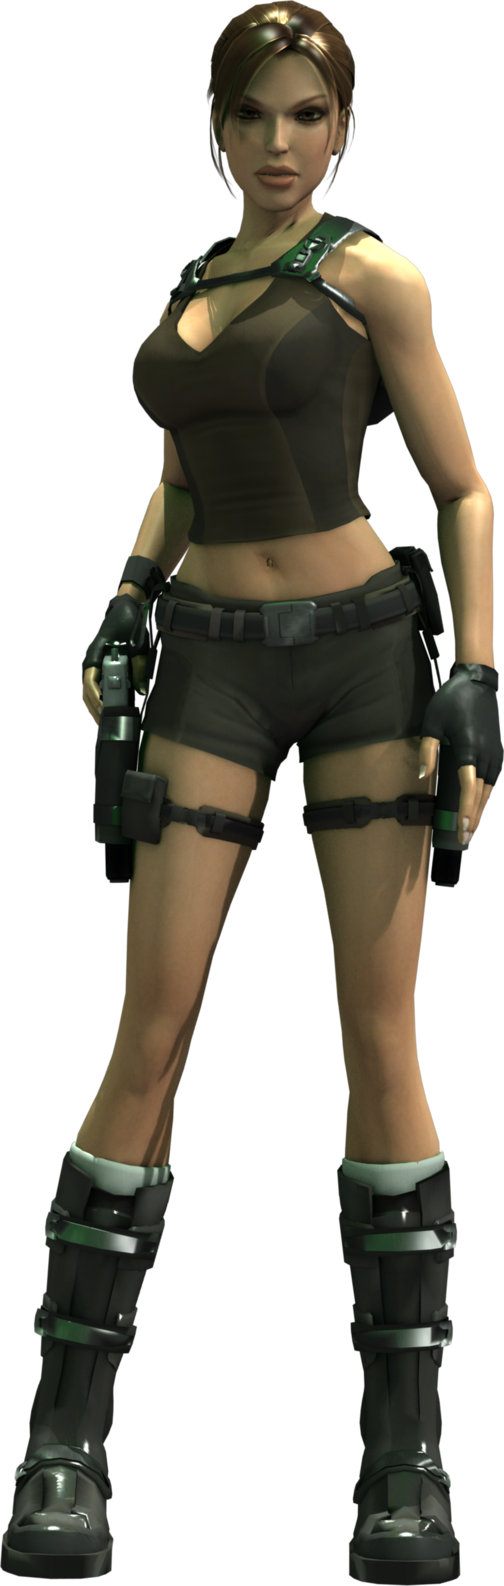 Lara Croft HD PNG - 93252